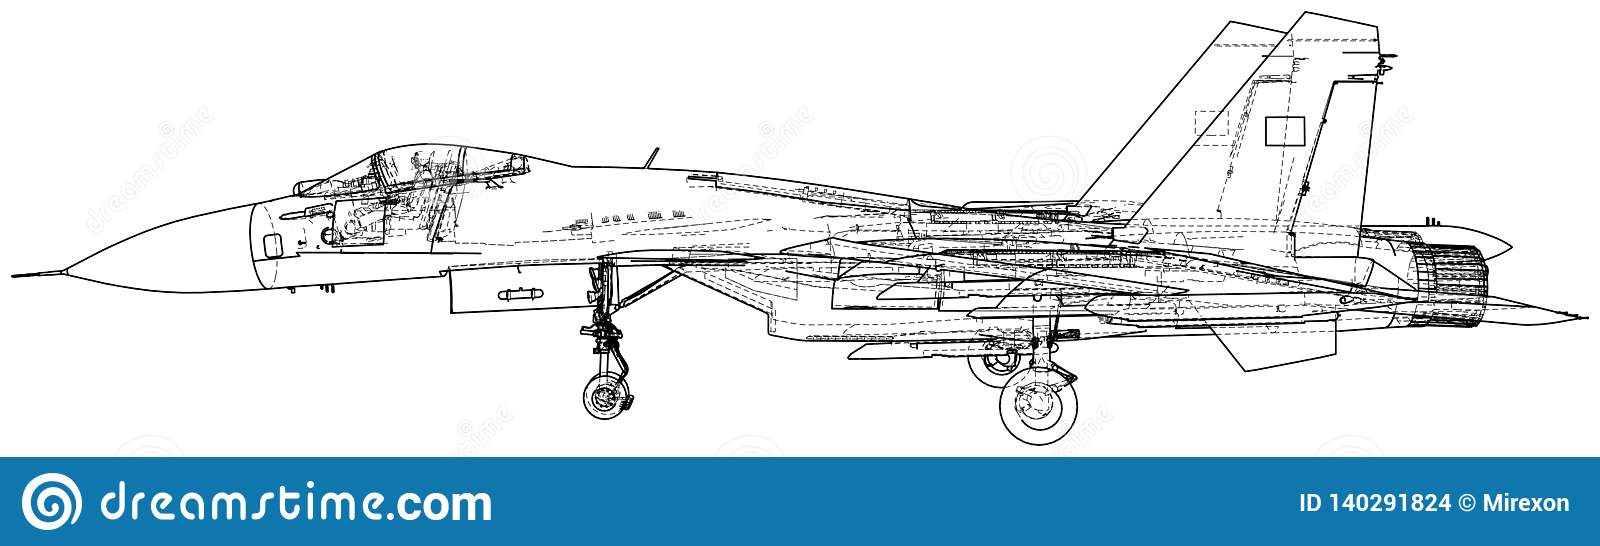 Awesome Military Plane Fighter Jet Vector Illustration Created Wiring 101 Photwellnesstrialsorg